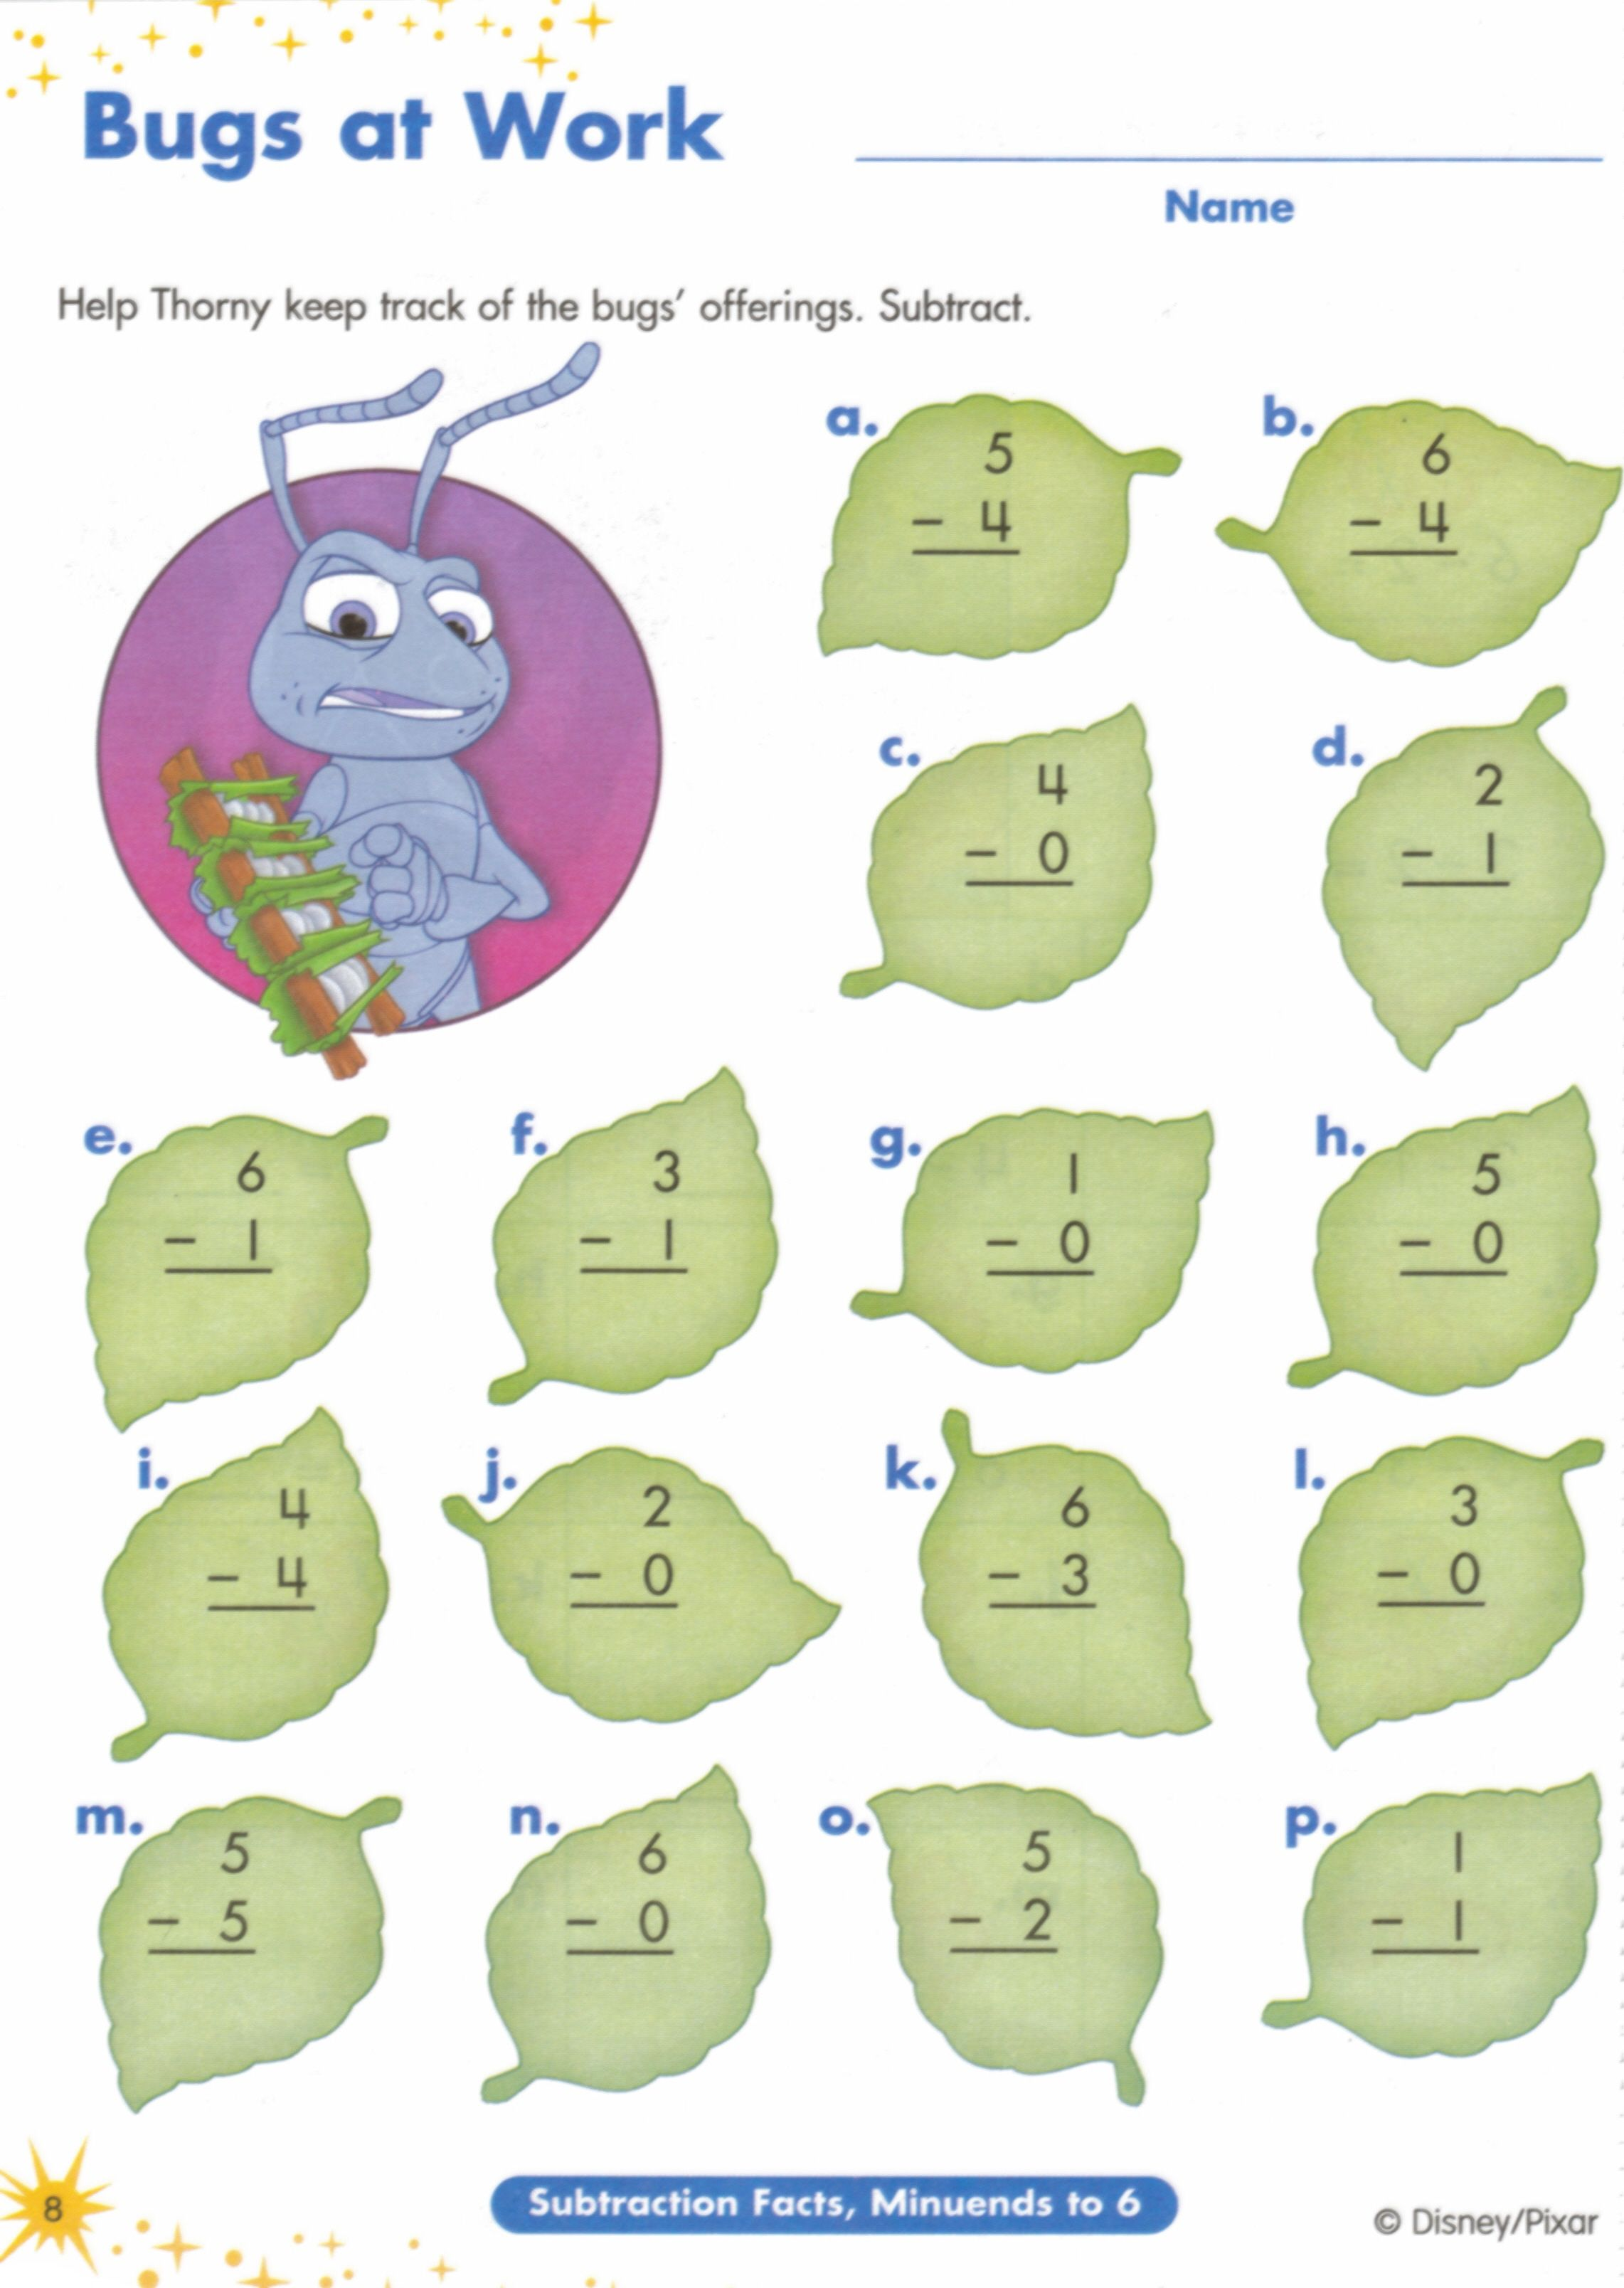 Proatmealus  Marvelous  Images About Worksheets On Pinterest  Fun Facts For Kids  With Exciting  Images About Worksheets On Pinterest  Fun Facts For Kids Earth Day Worksheets And Jungles With Awesome Manuscript Practice Worksheets Also Quantifiers Worksheet In Addition Double The Consonant And Add Ed Worksheets And Planning A Budget Worksheet As Well As Line Symmetry And Rotational Symmetry Worksheets Additionally Counting In S Worksheet From Pinterestcom With Proatmealus  Exciting  Images About Worksheets On Pinterest  Fun Facts For Kids  With Awesome  Images About Worksheets On Pinterest  Fun Facts For Kids Earth Day Worksheets And Jungles And Marvelous Manuscript Practice Worksheets Also Quantifiers Worksheet In Addition Double The Consonant And Add Ed Worksheets From Pinterestcom